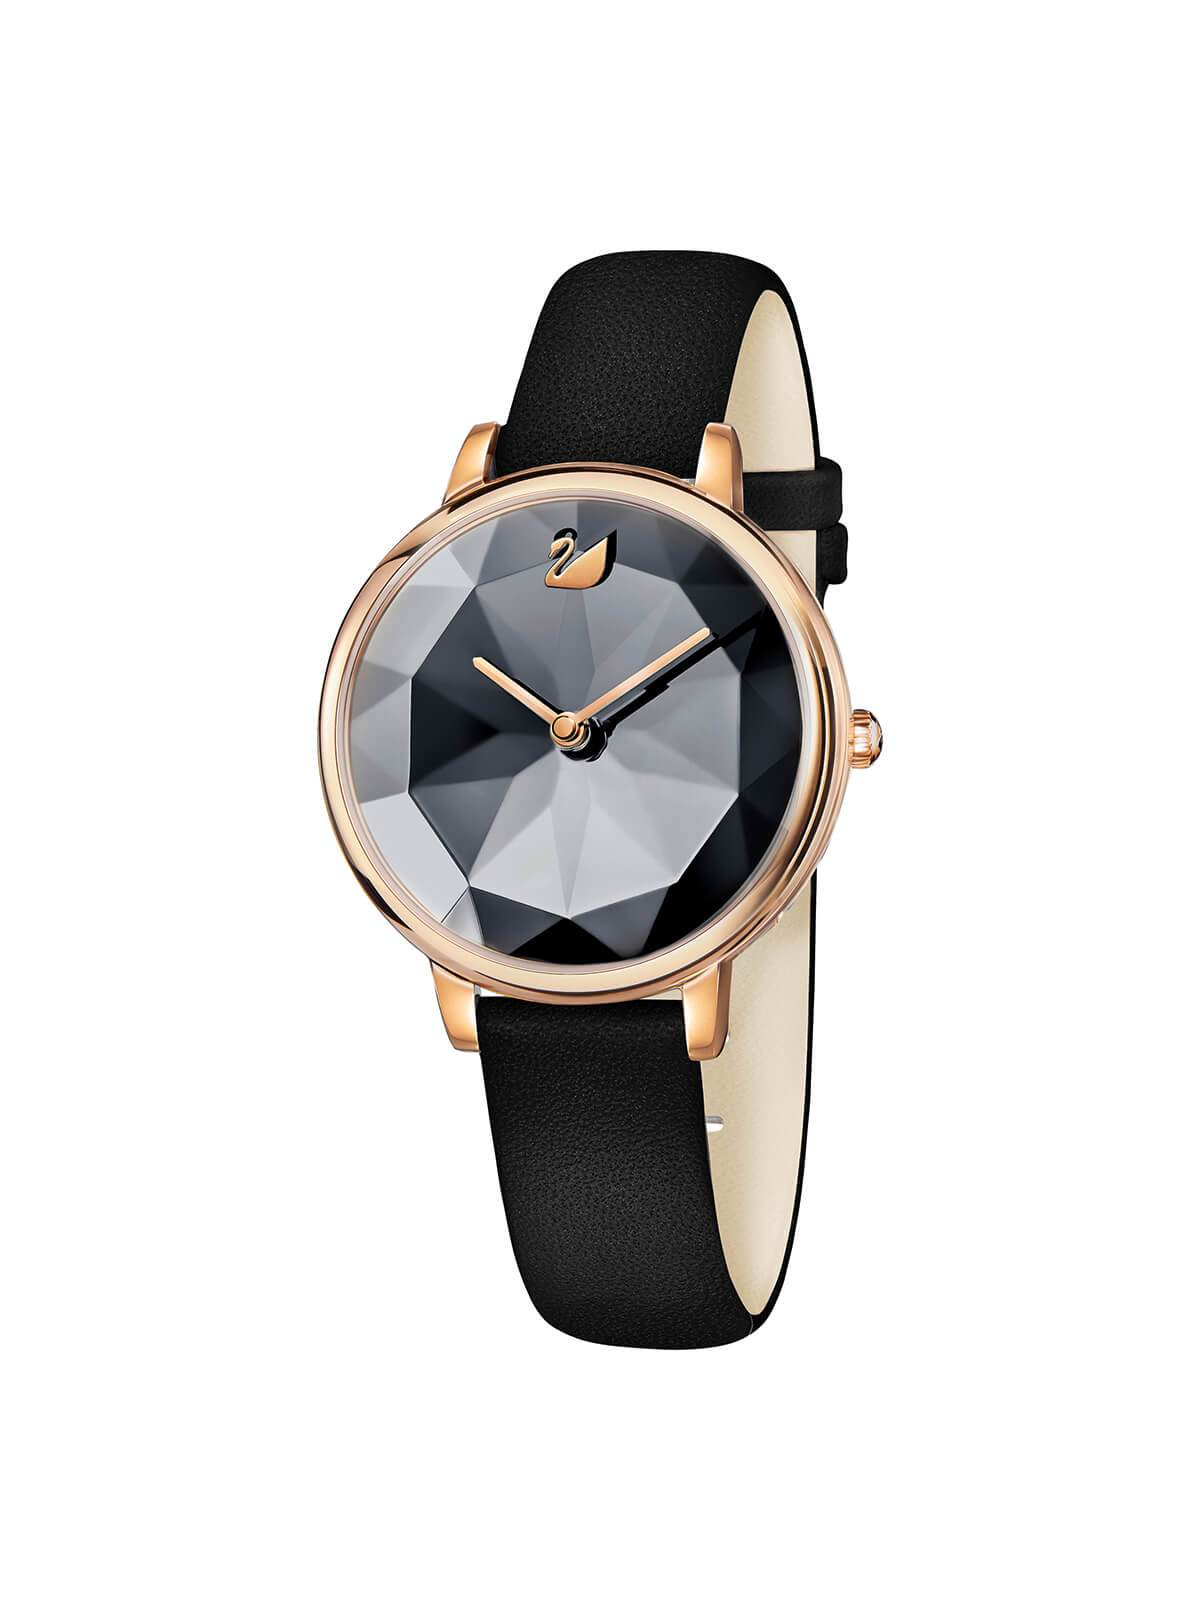 Swarovski Crystal Lake Rose Gold Plated Watch on Black Leather Strap 5416009